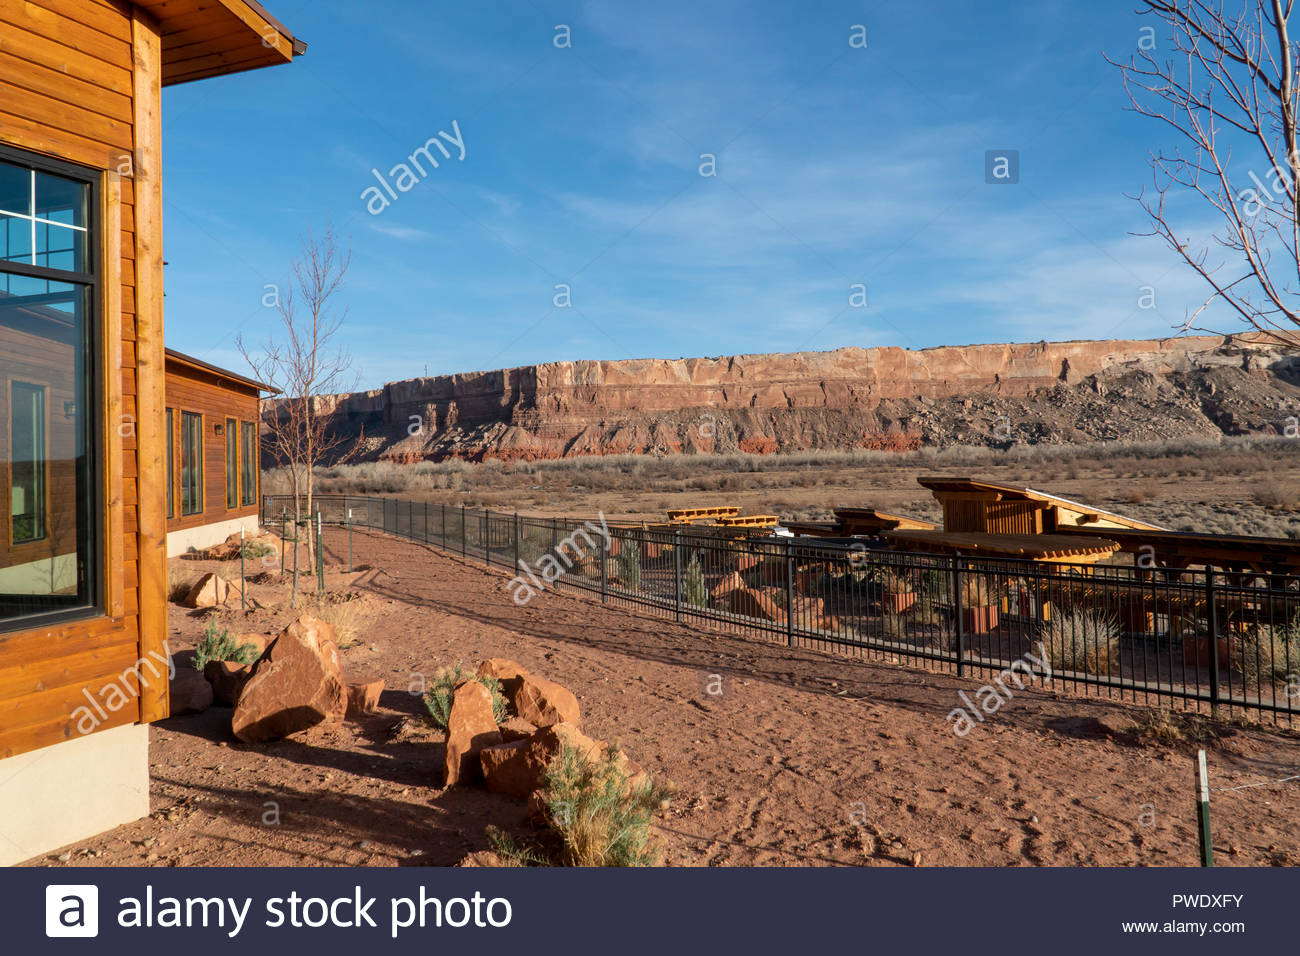 View of the surrounding mesas and grounds at the Desert Rose Inn in Bluff, Utah USA Stock Photo